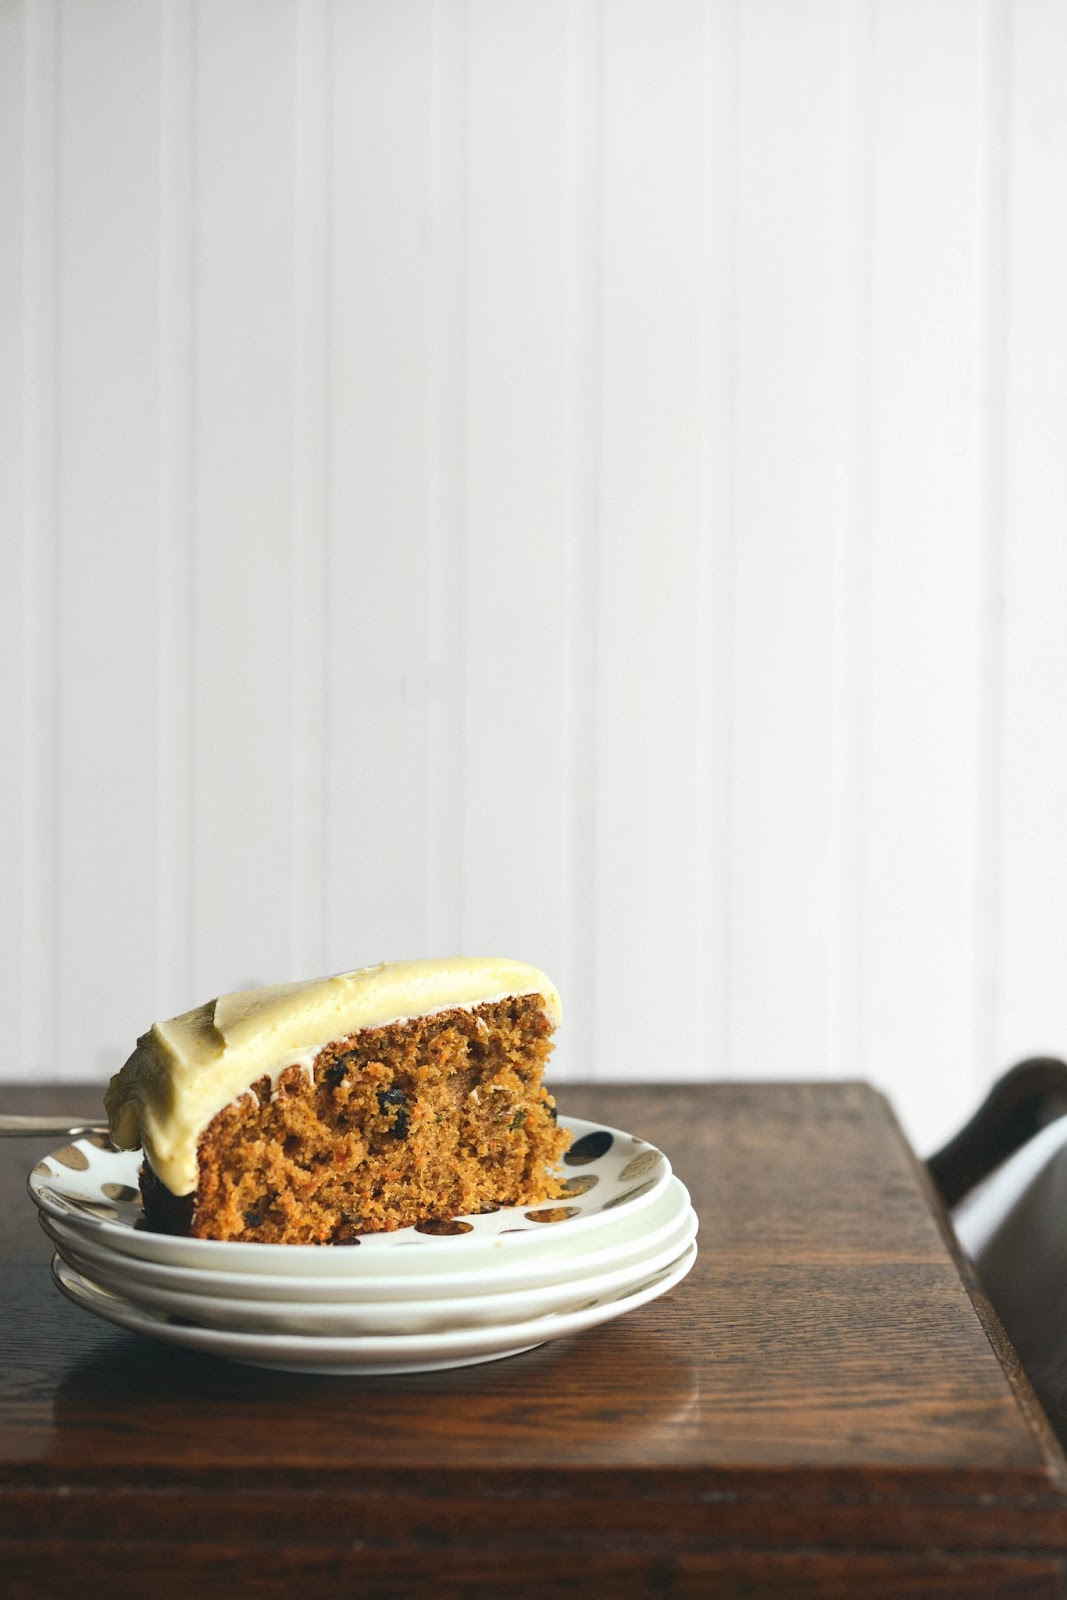 ... The Kitchen: Big Bad Carrot Cake with Orange Cream Cheese Frosting